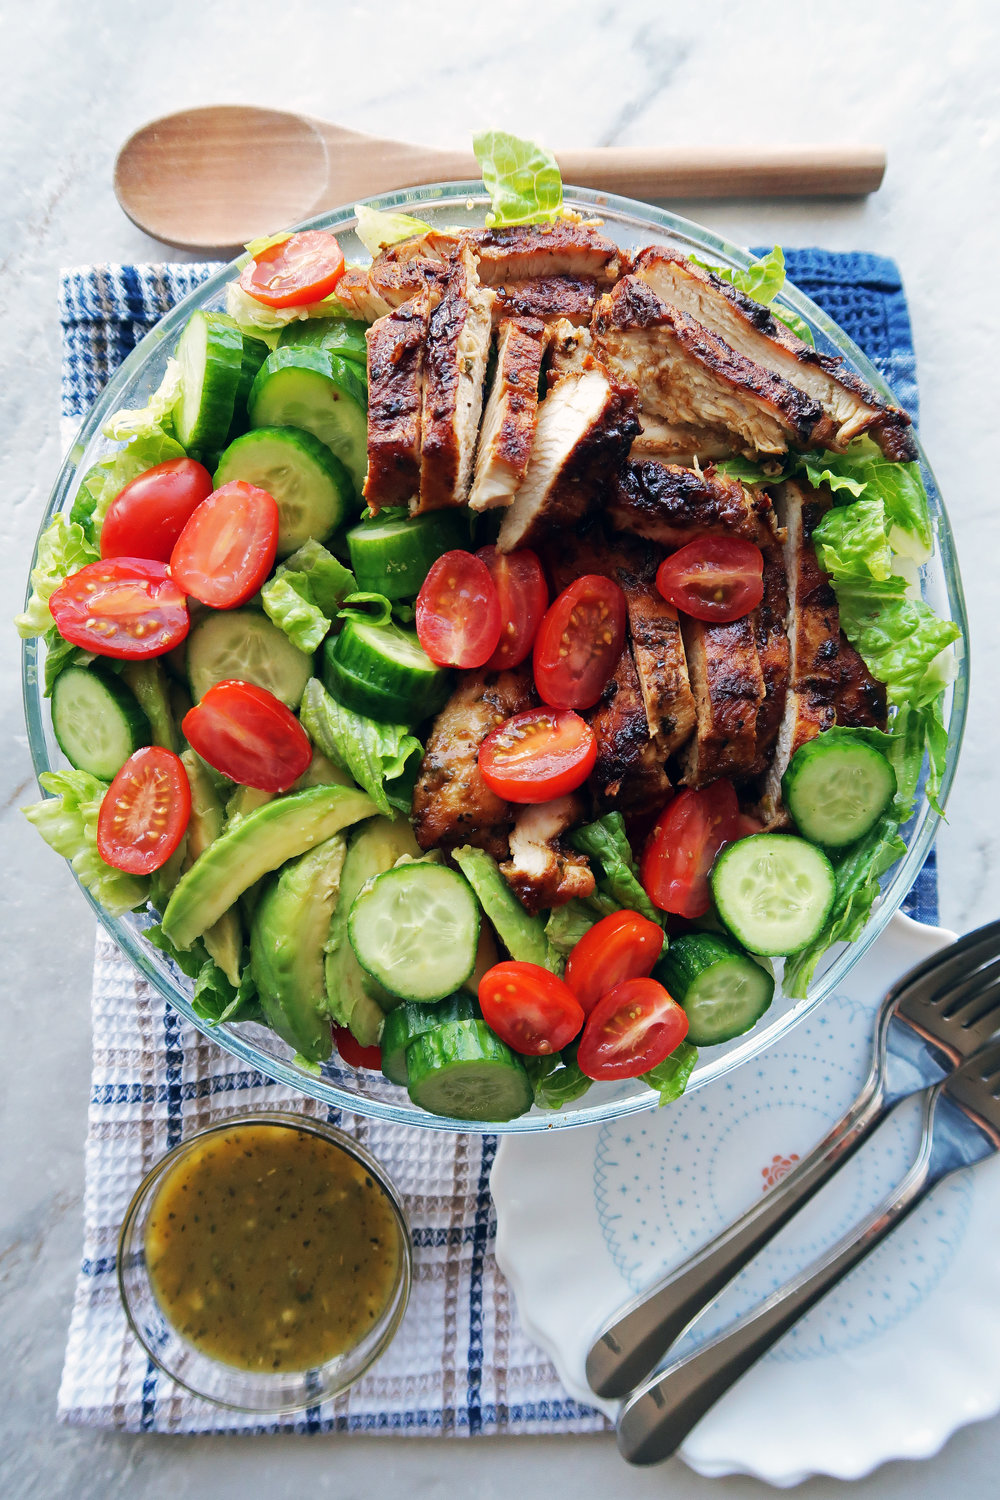 Lettuce, tomatoes, cucumbers, avocado, and sliced honey mustard chicken in a large bowl with dressing on the side.